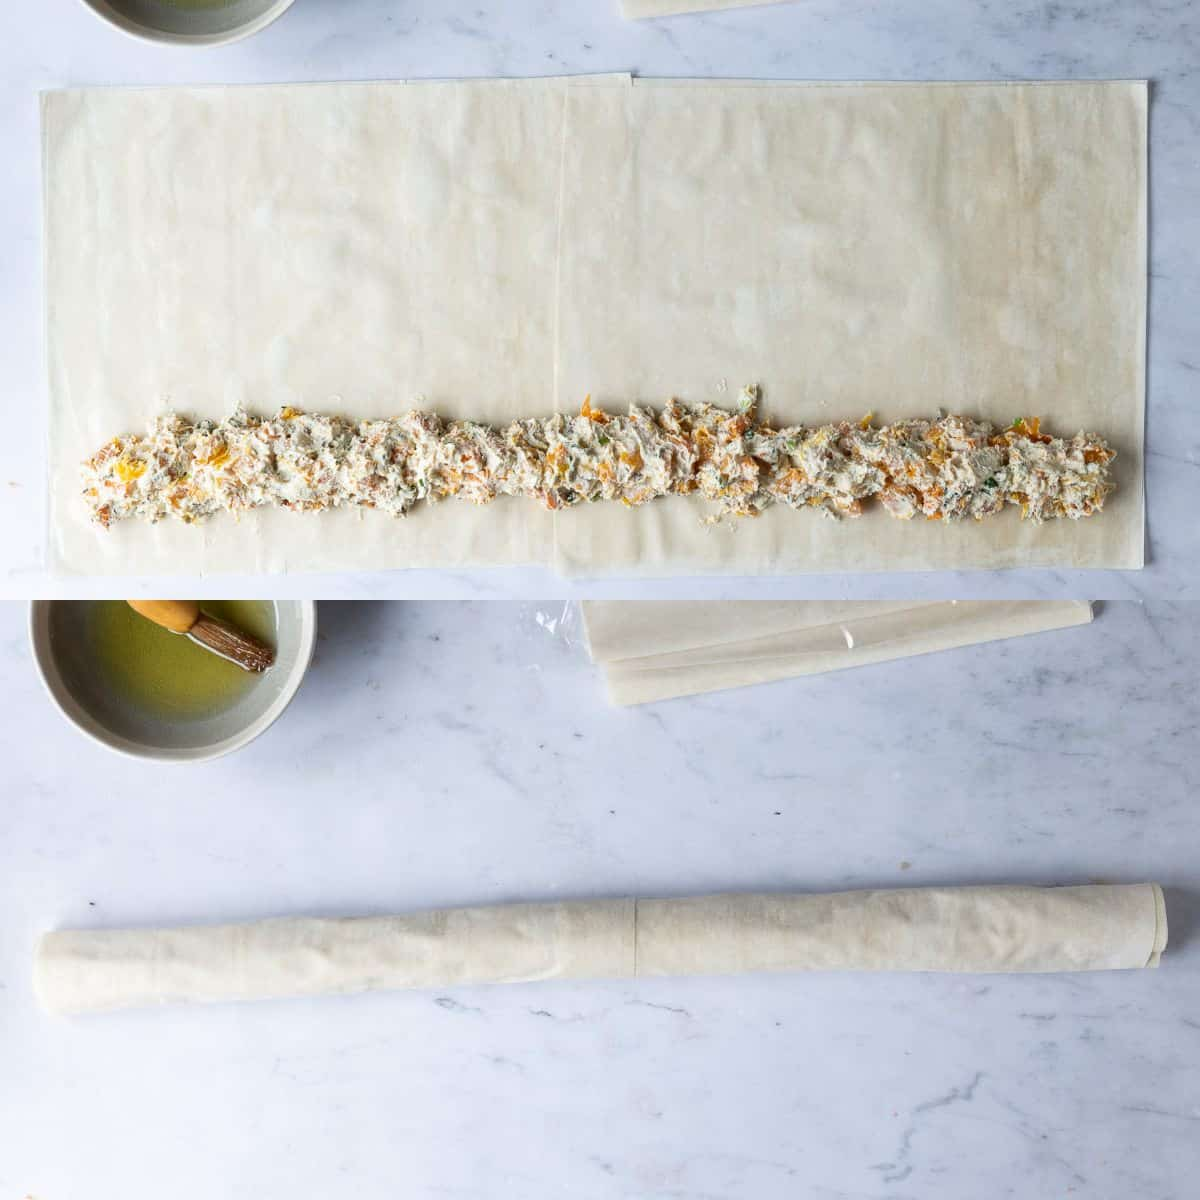 Step 5 - a two image collage of adding the filling and rolling up the pastry.